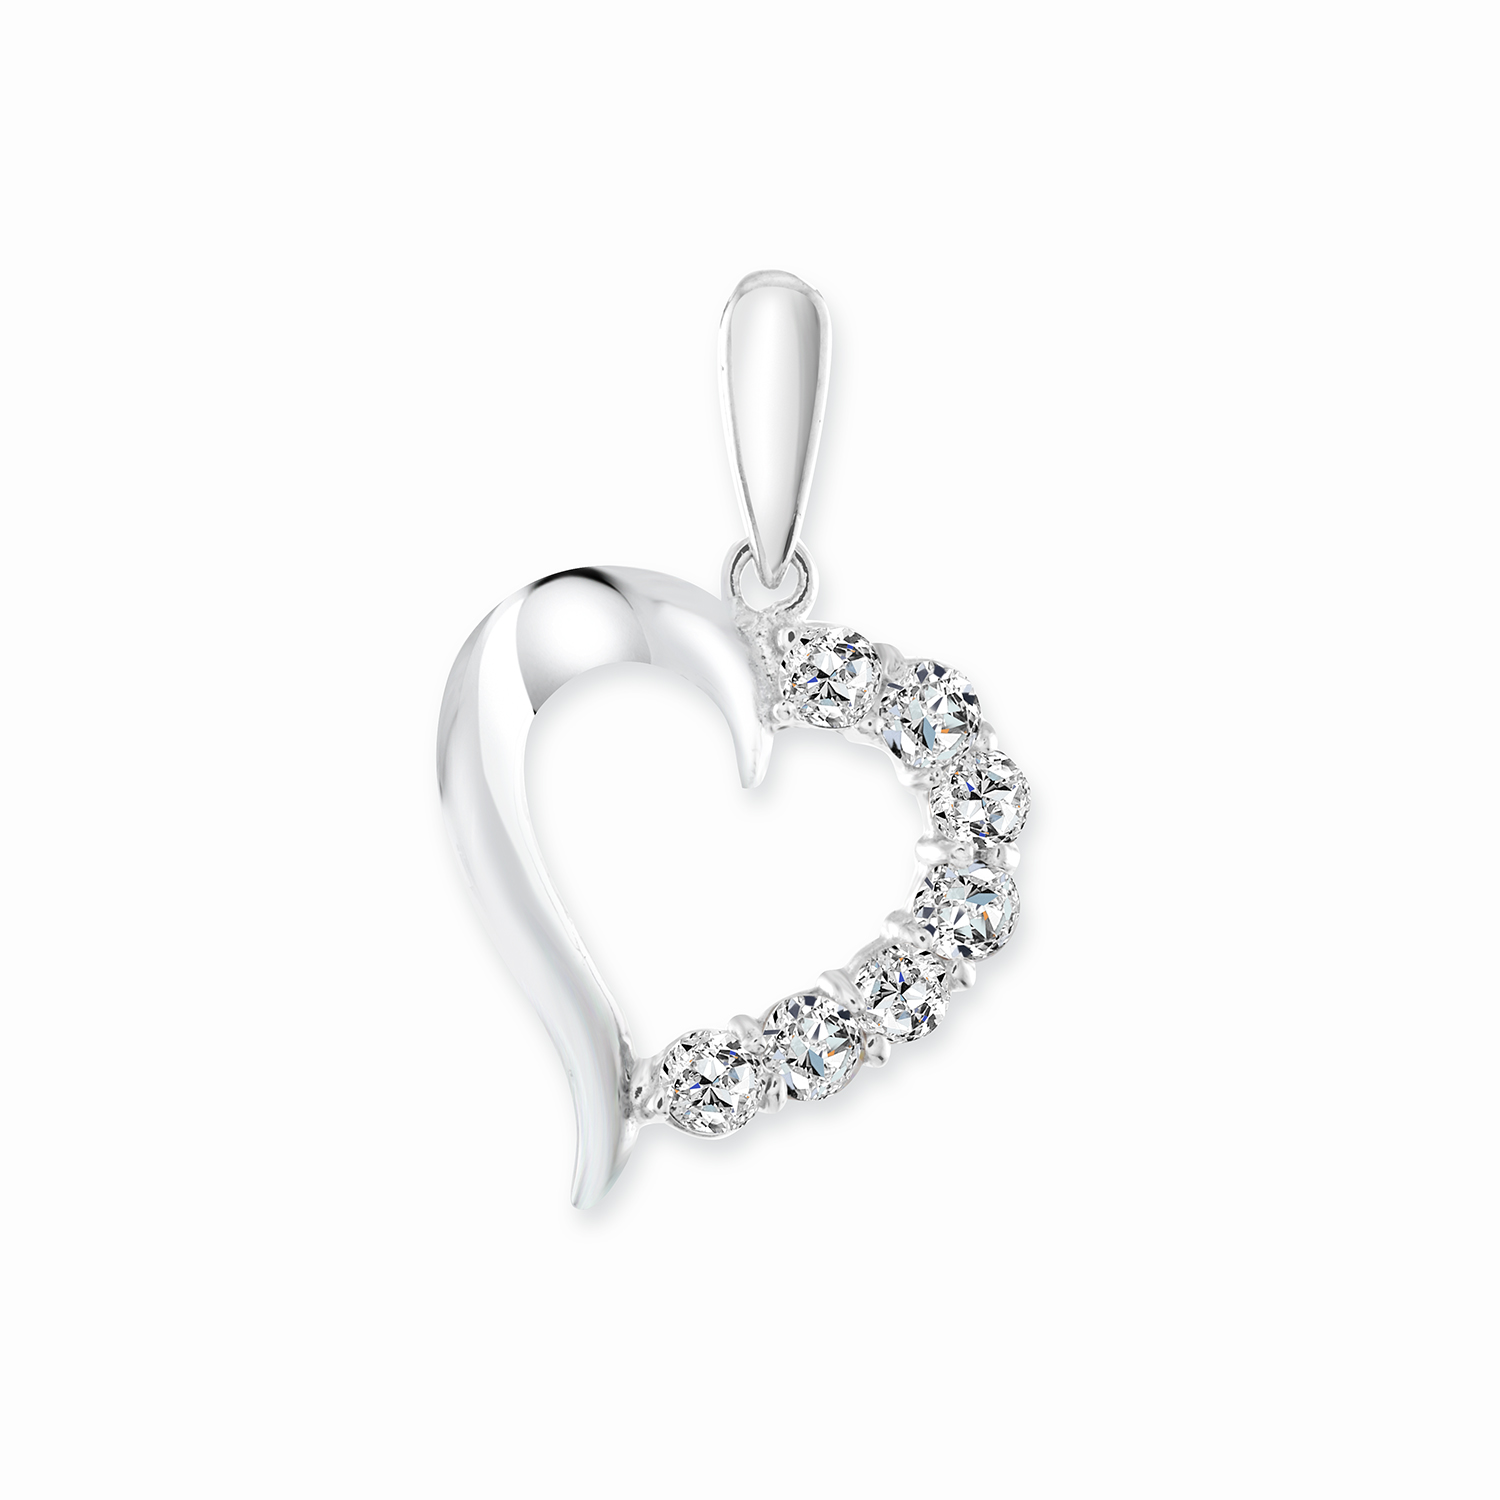 Heart pendant with cubic zirconia - in 14K white gold - Heart measures 1.2cm by 1.2cm